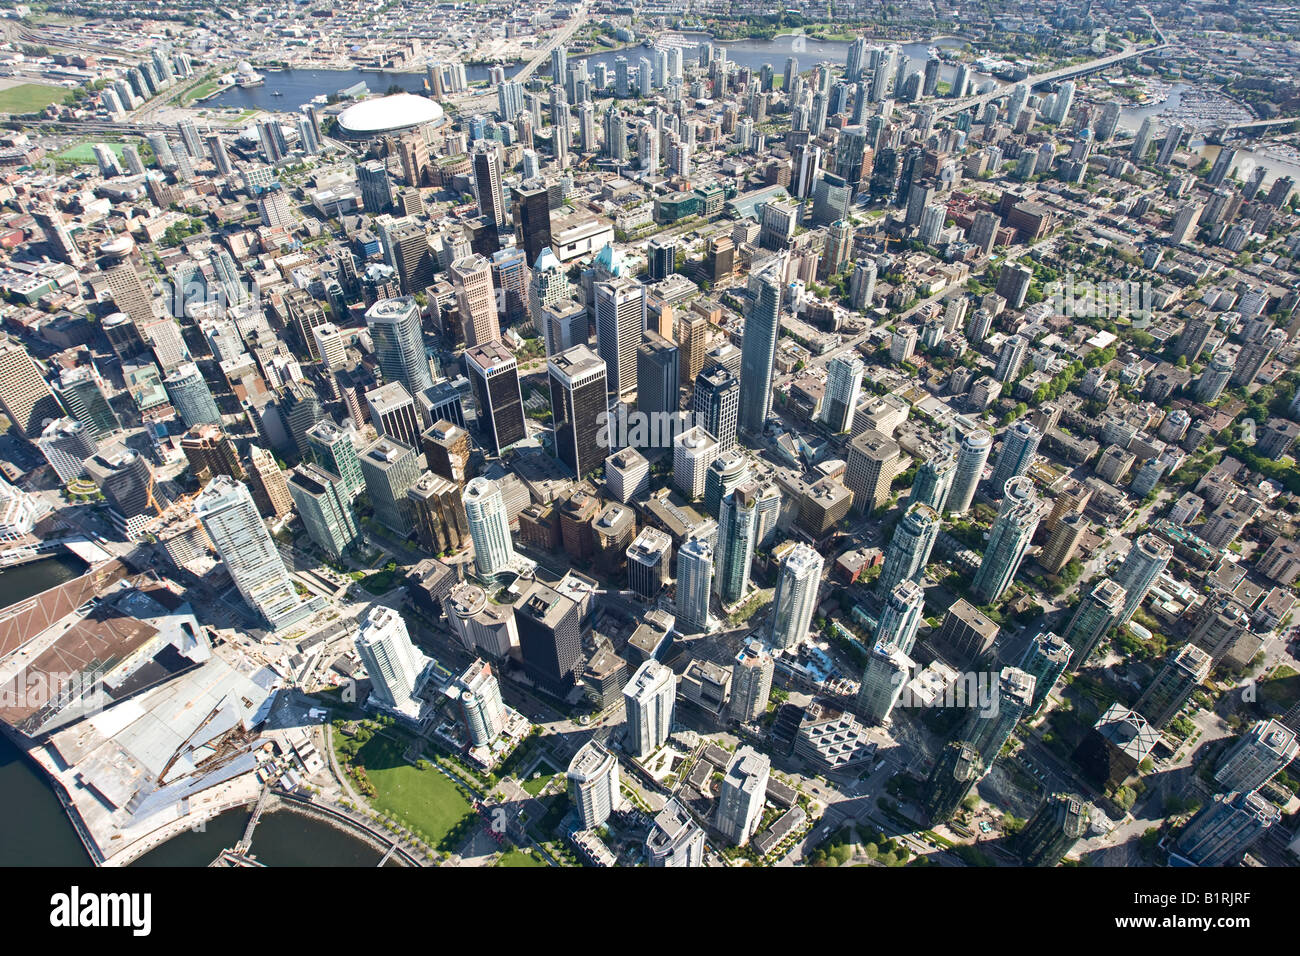 Sky scrapers in Coral Harbour, Vancouver, British Columbia, Canada, North America - Stock Image